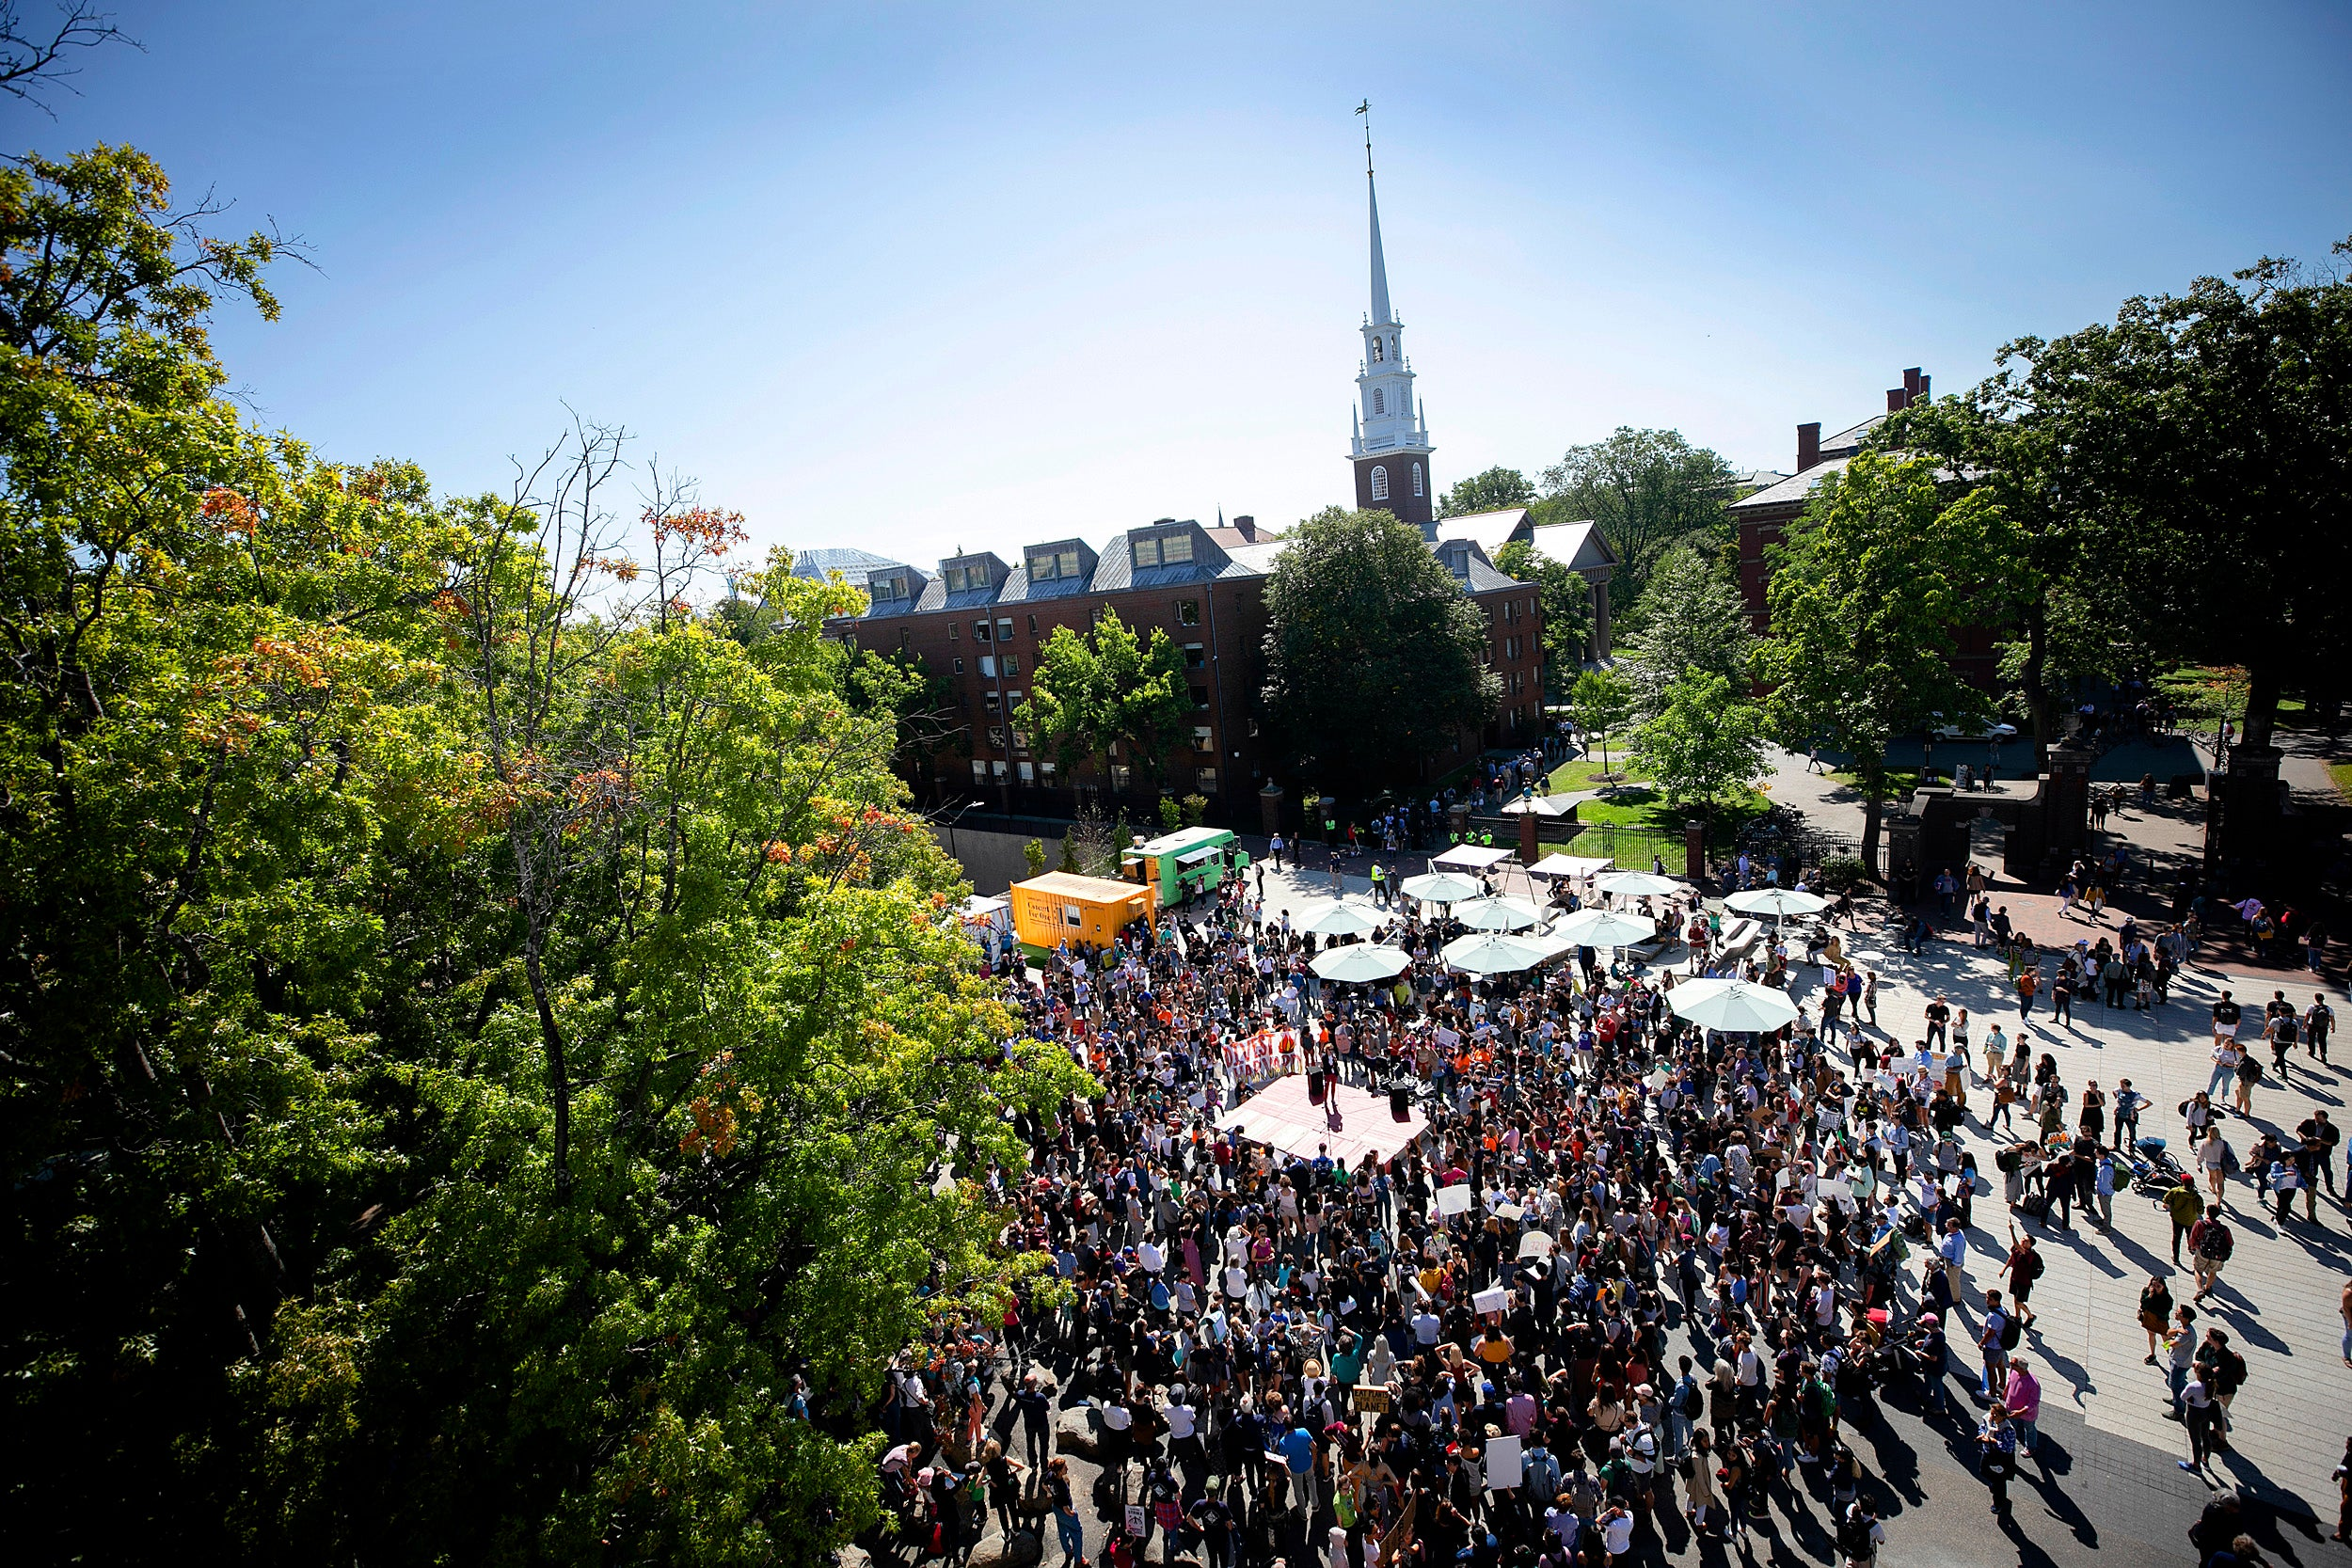 Crowd on Harvard Science Center Plaza